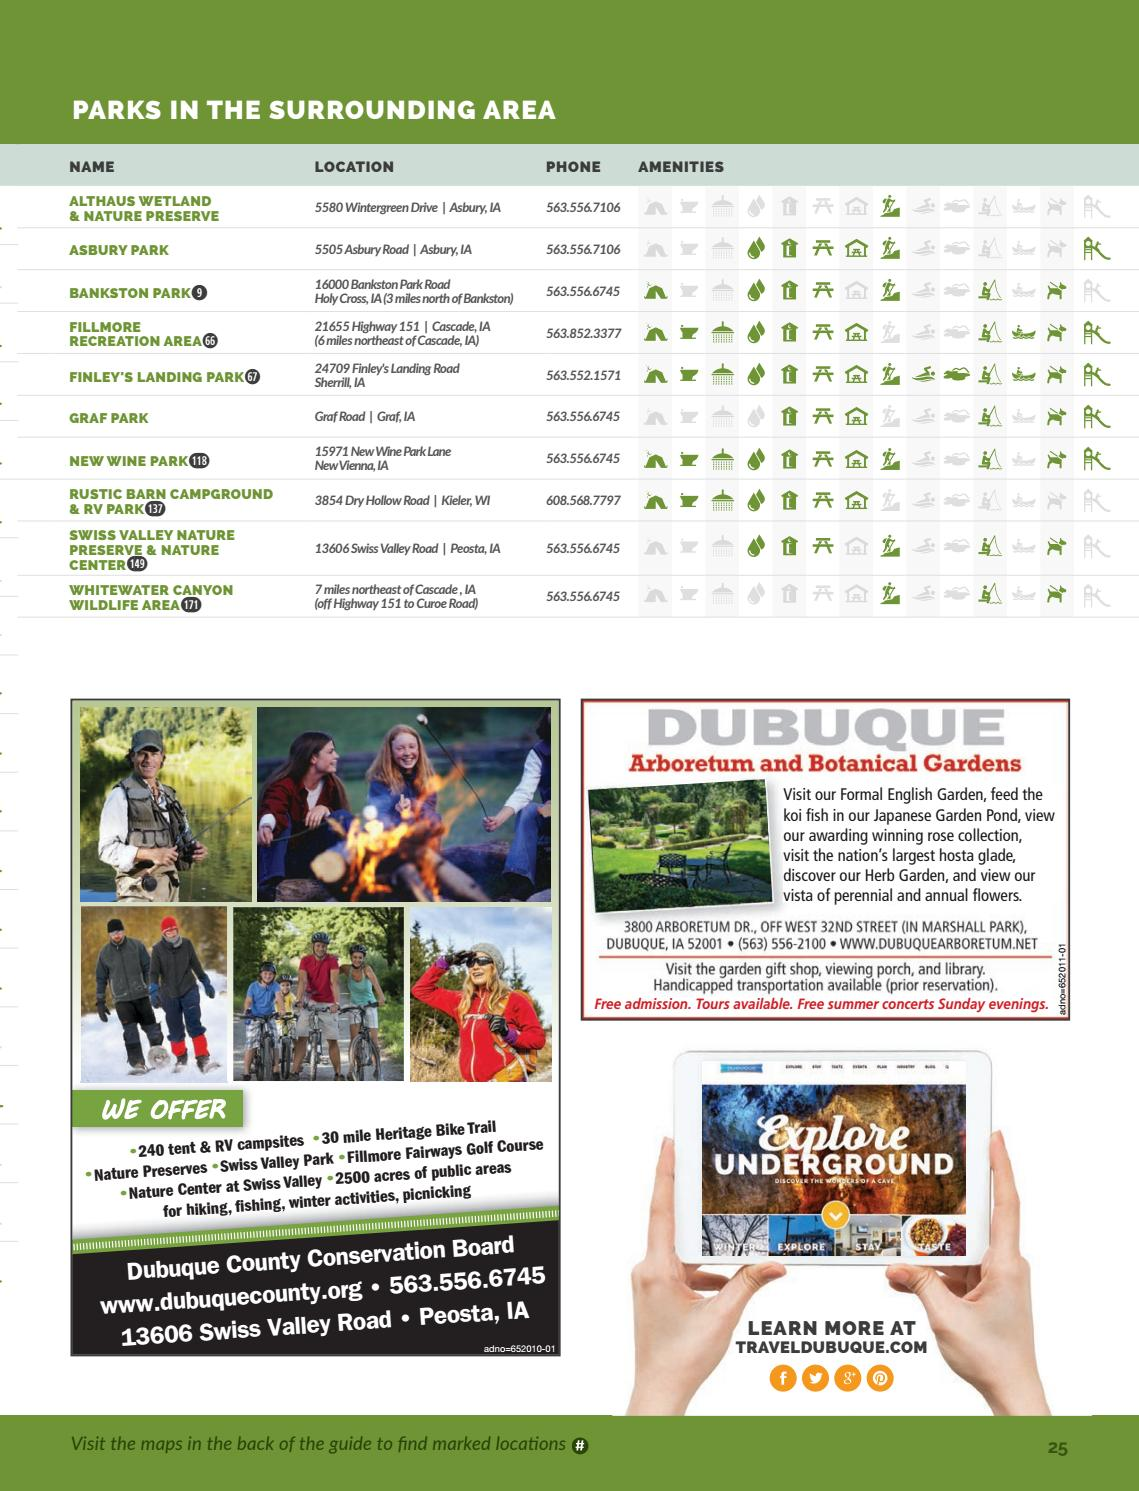 2017 dubuque iowa travel guide by travel dubuque issuu